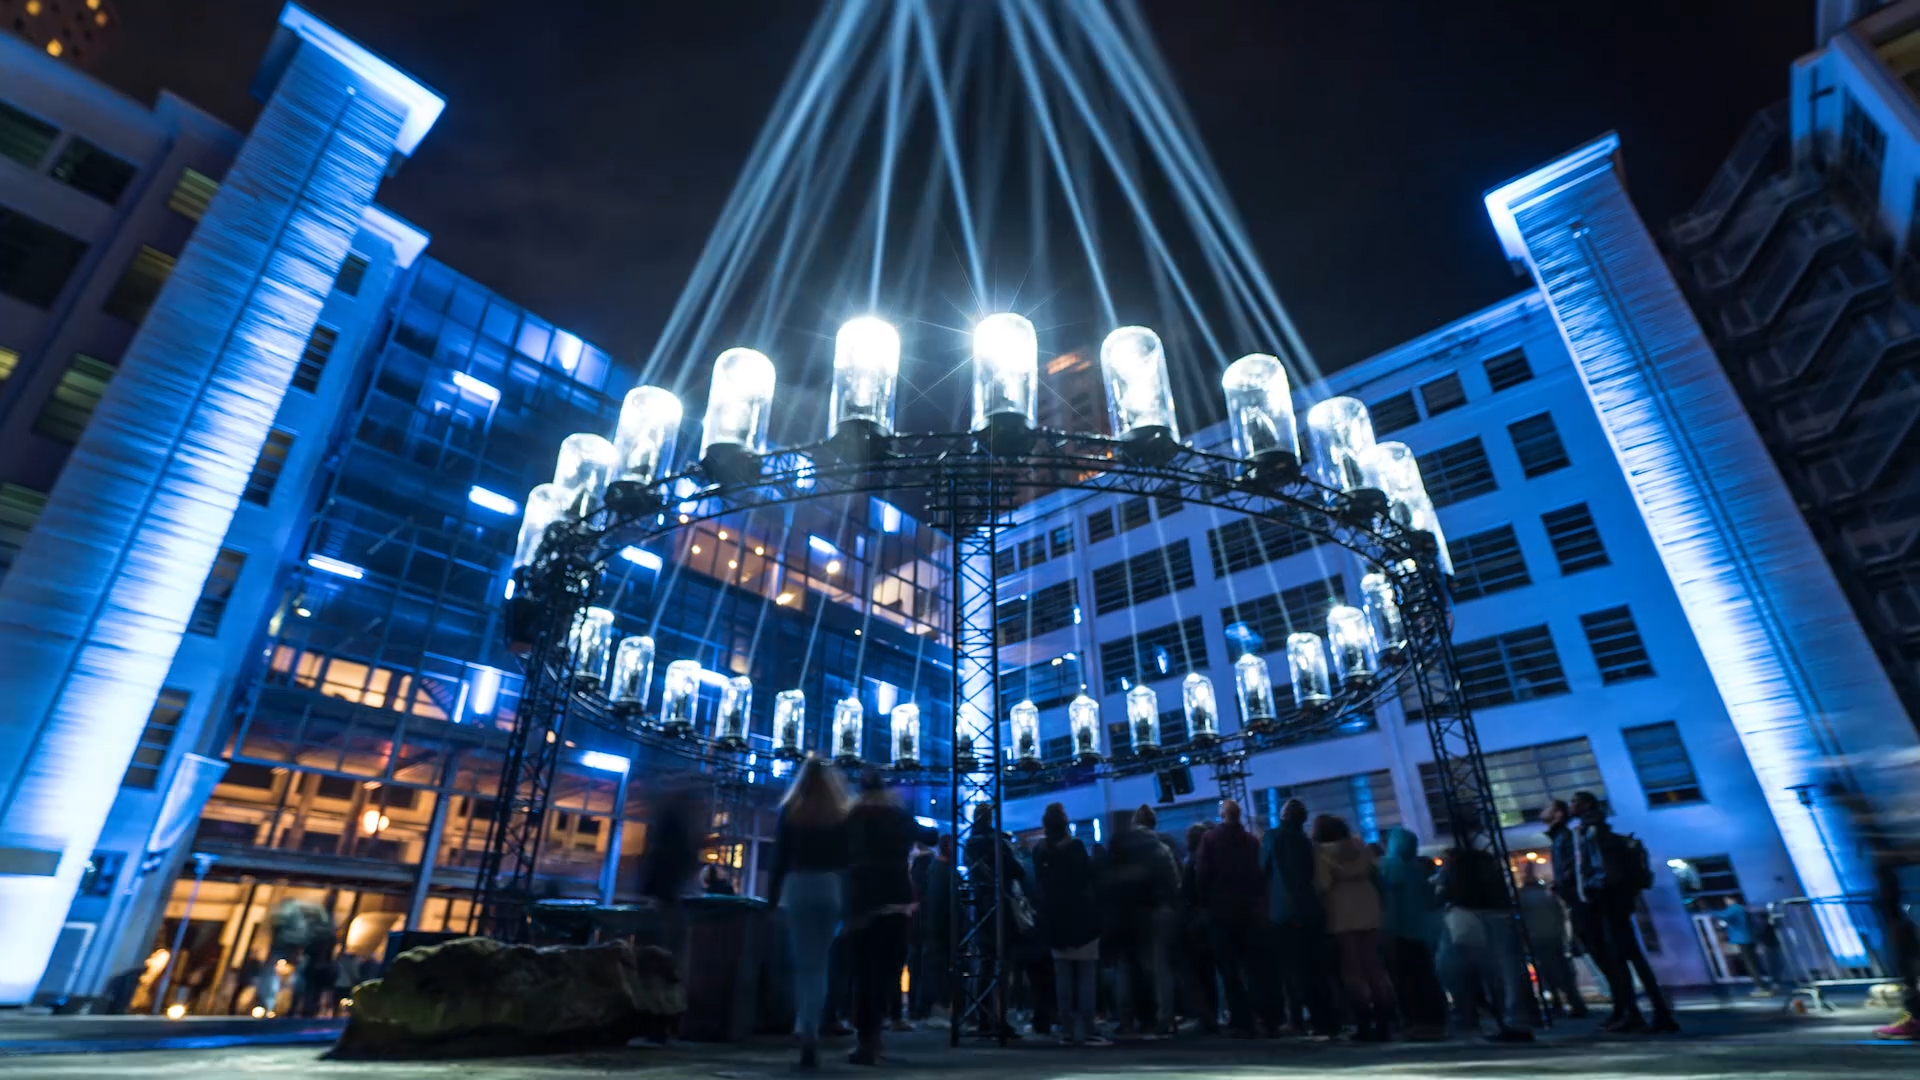 Glow Route Eindhoven Glow Eindhoven An Amazing Light Art Festival Video